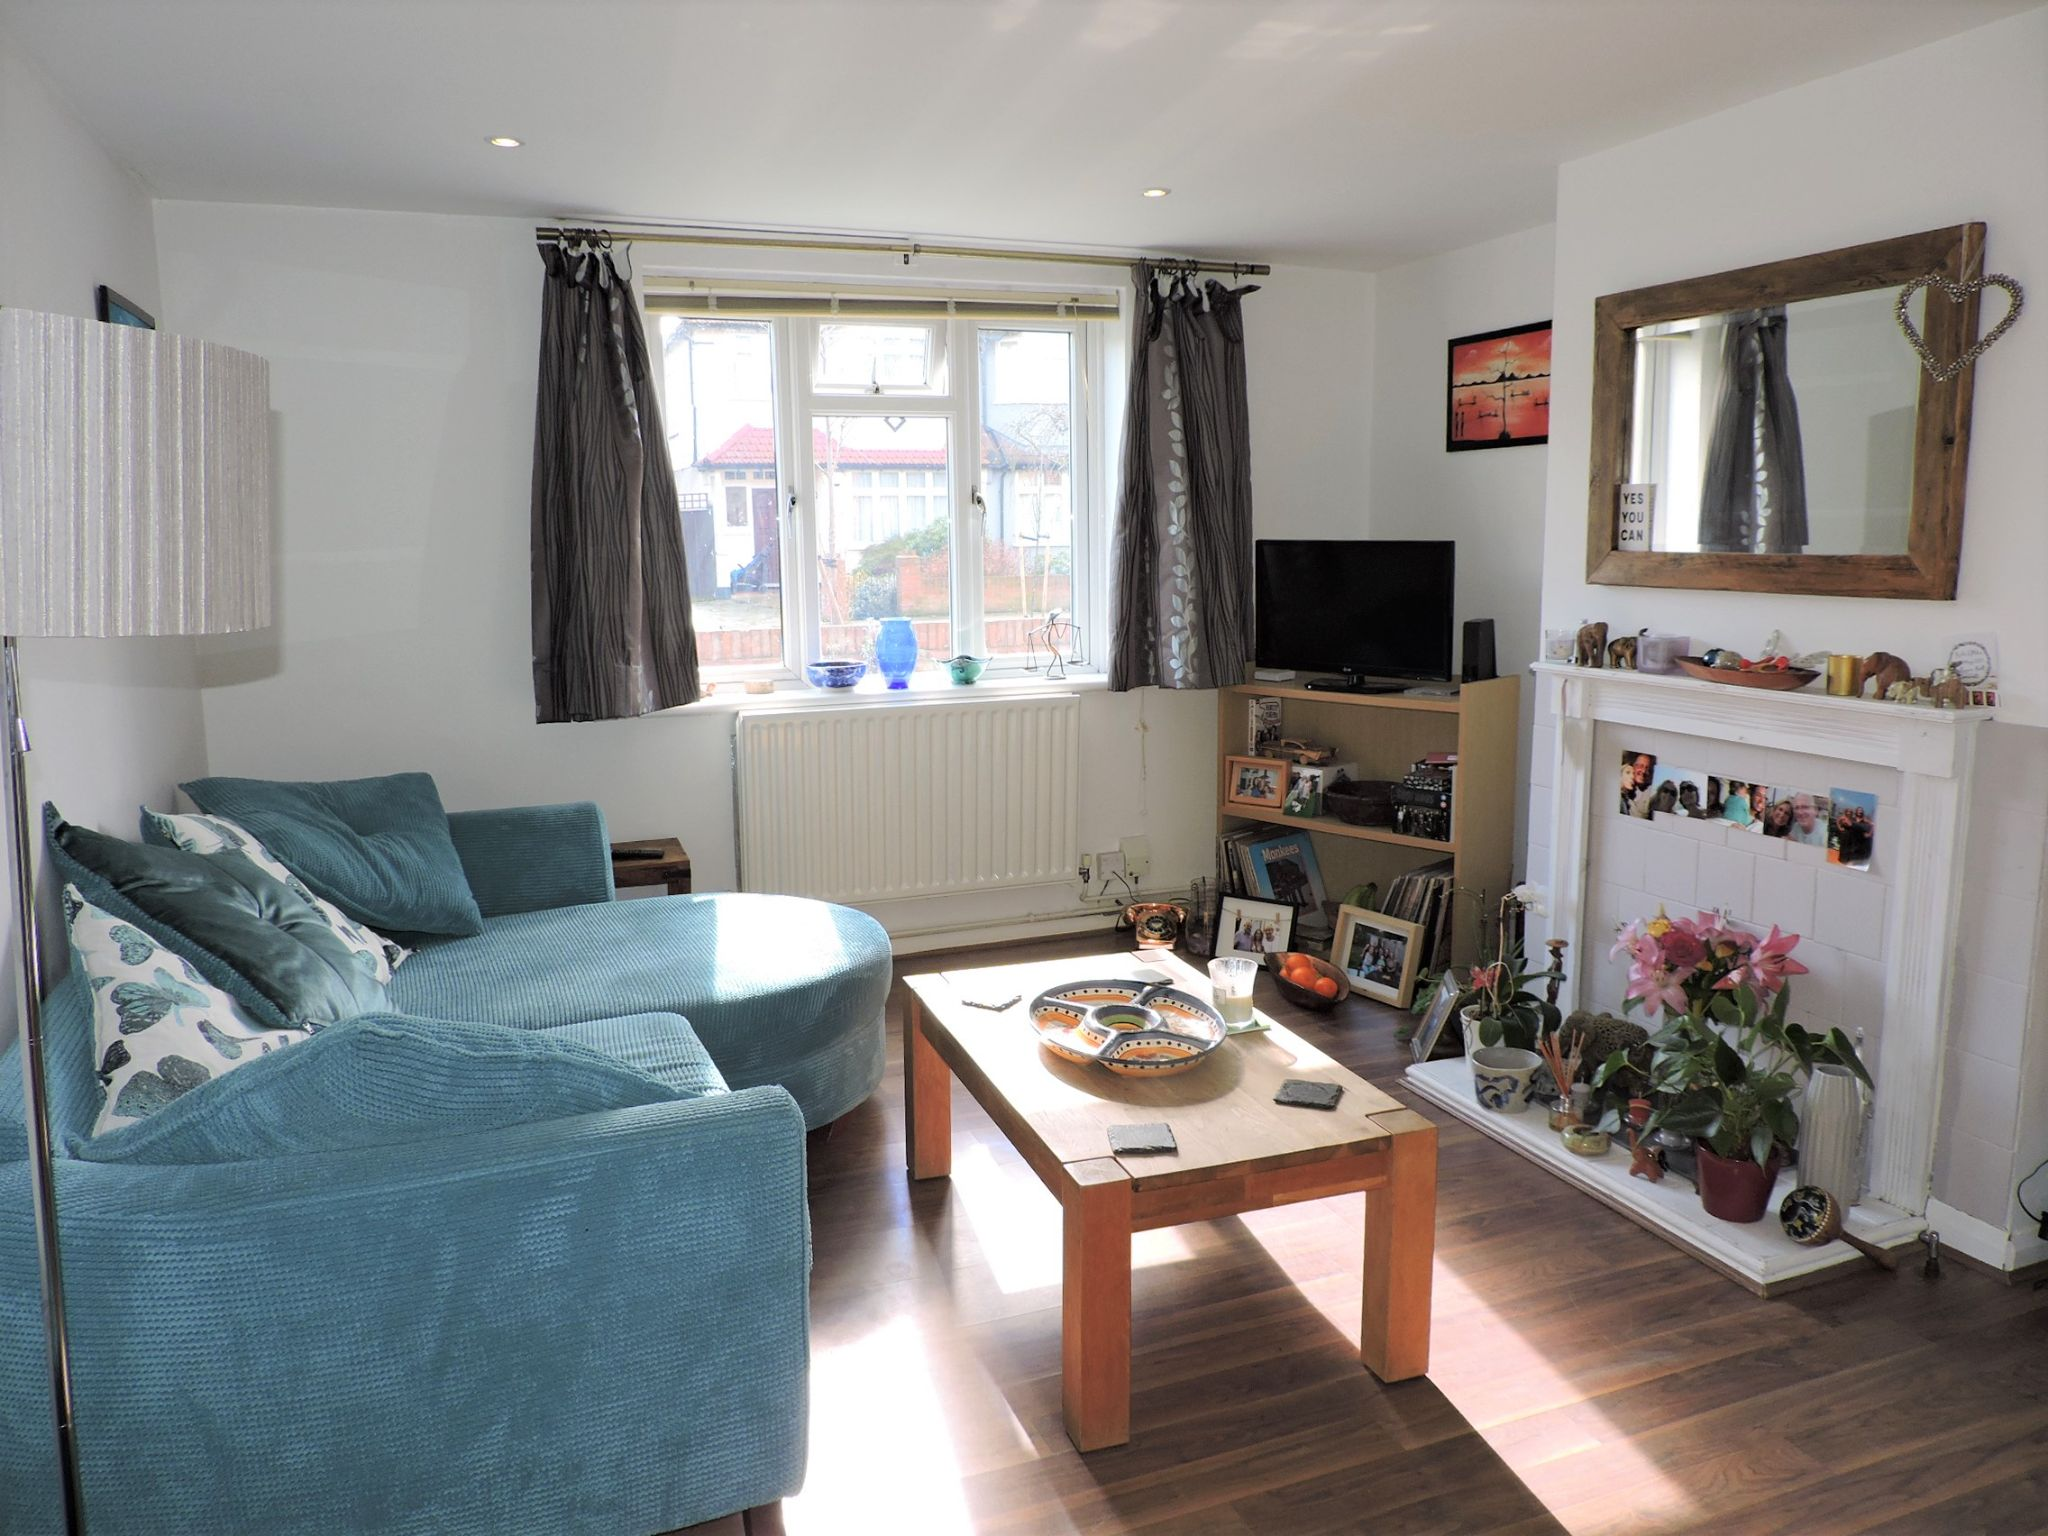 2 bedroom flat flat/apartment Sale Agreed in New Malden - Property photograph